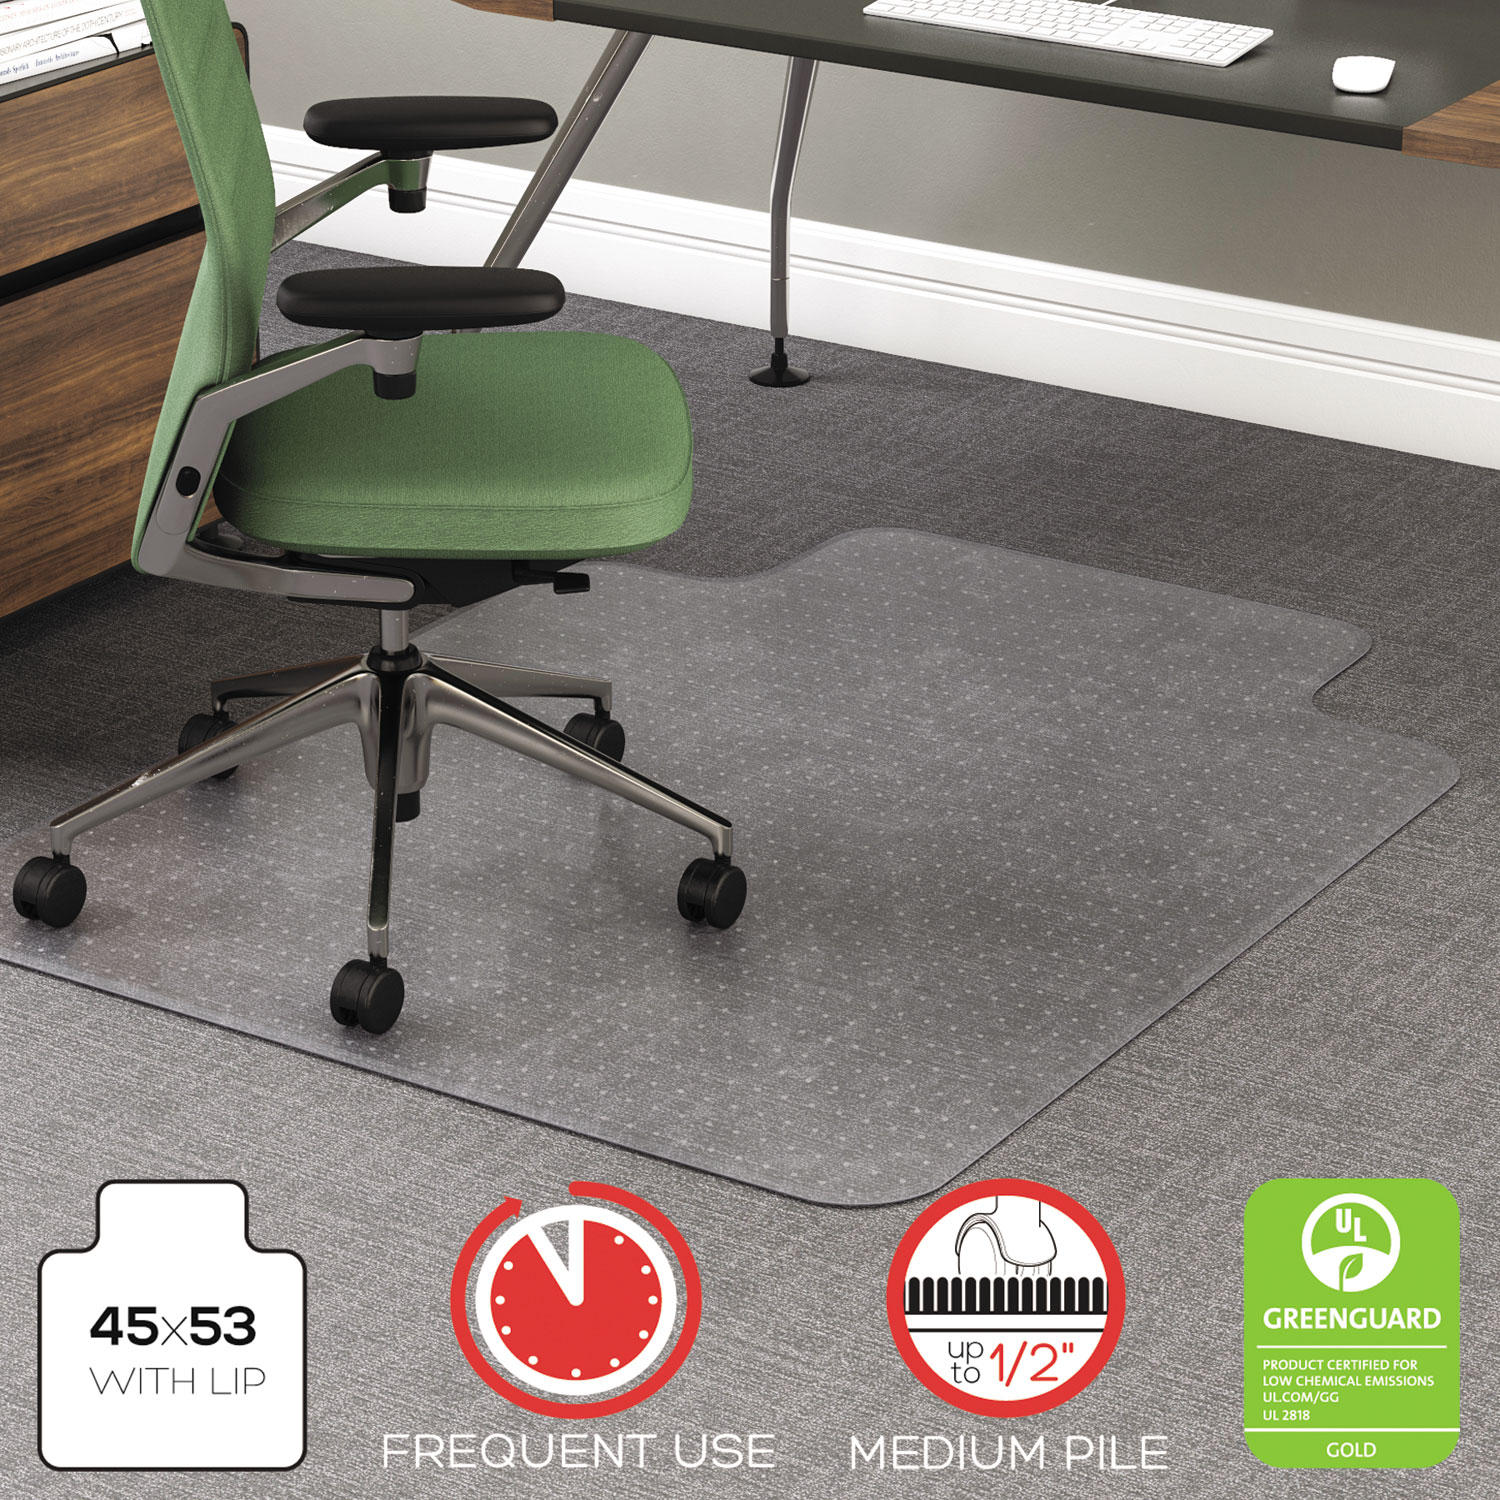 High Chair Floor Mat Rollamat Frequent Use Chair Mat For High Pile Carpet By